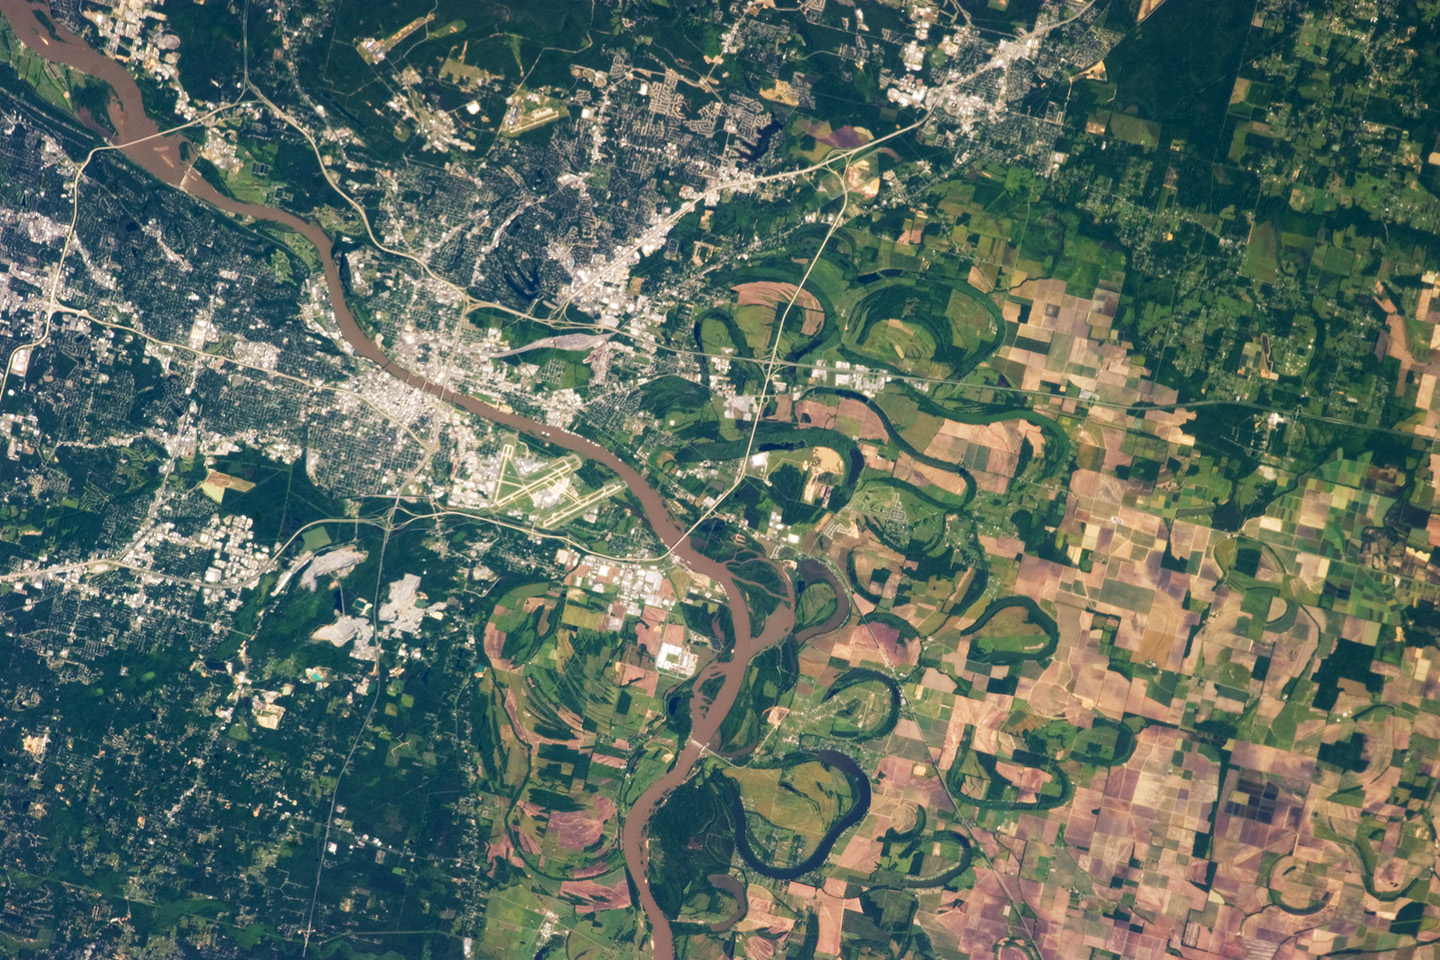 Today's Image of the Day comes thanks to the NASA Earth Observatory and features an overhead look at Little Rock, Arkansas.